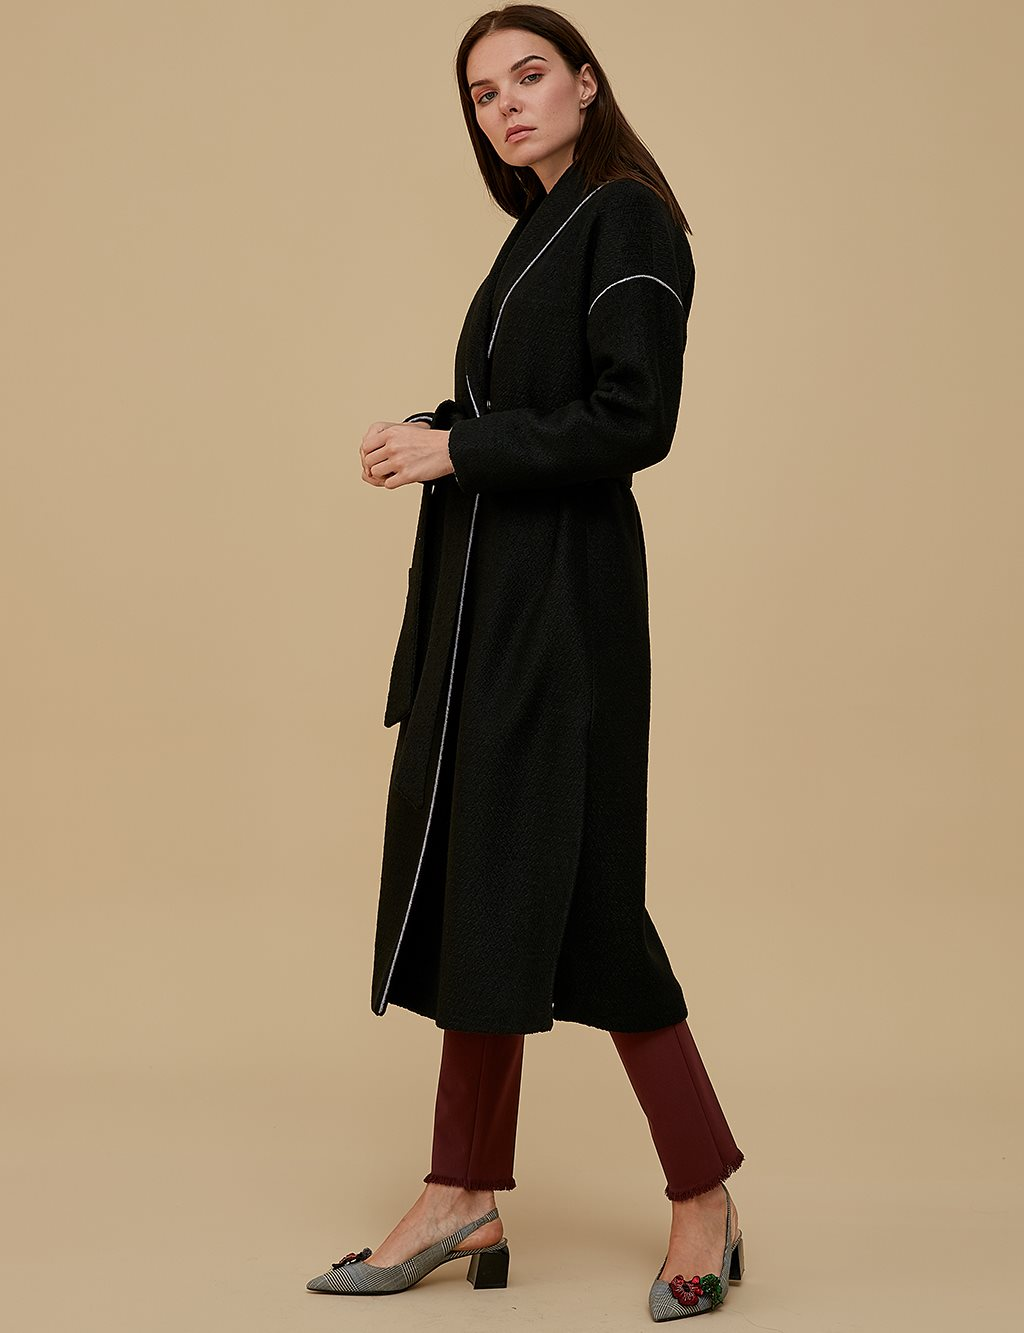 Collar Detailed Coat A9 14062 Black